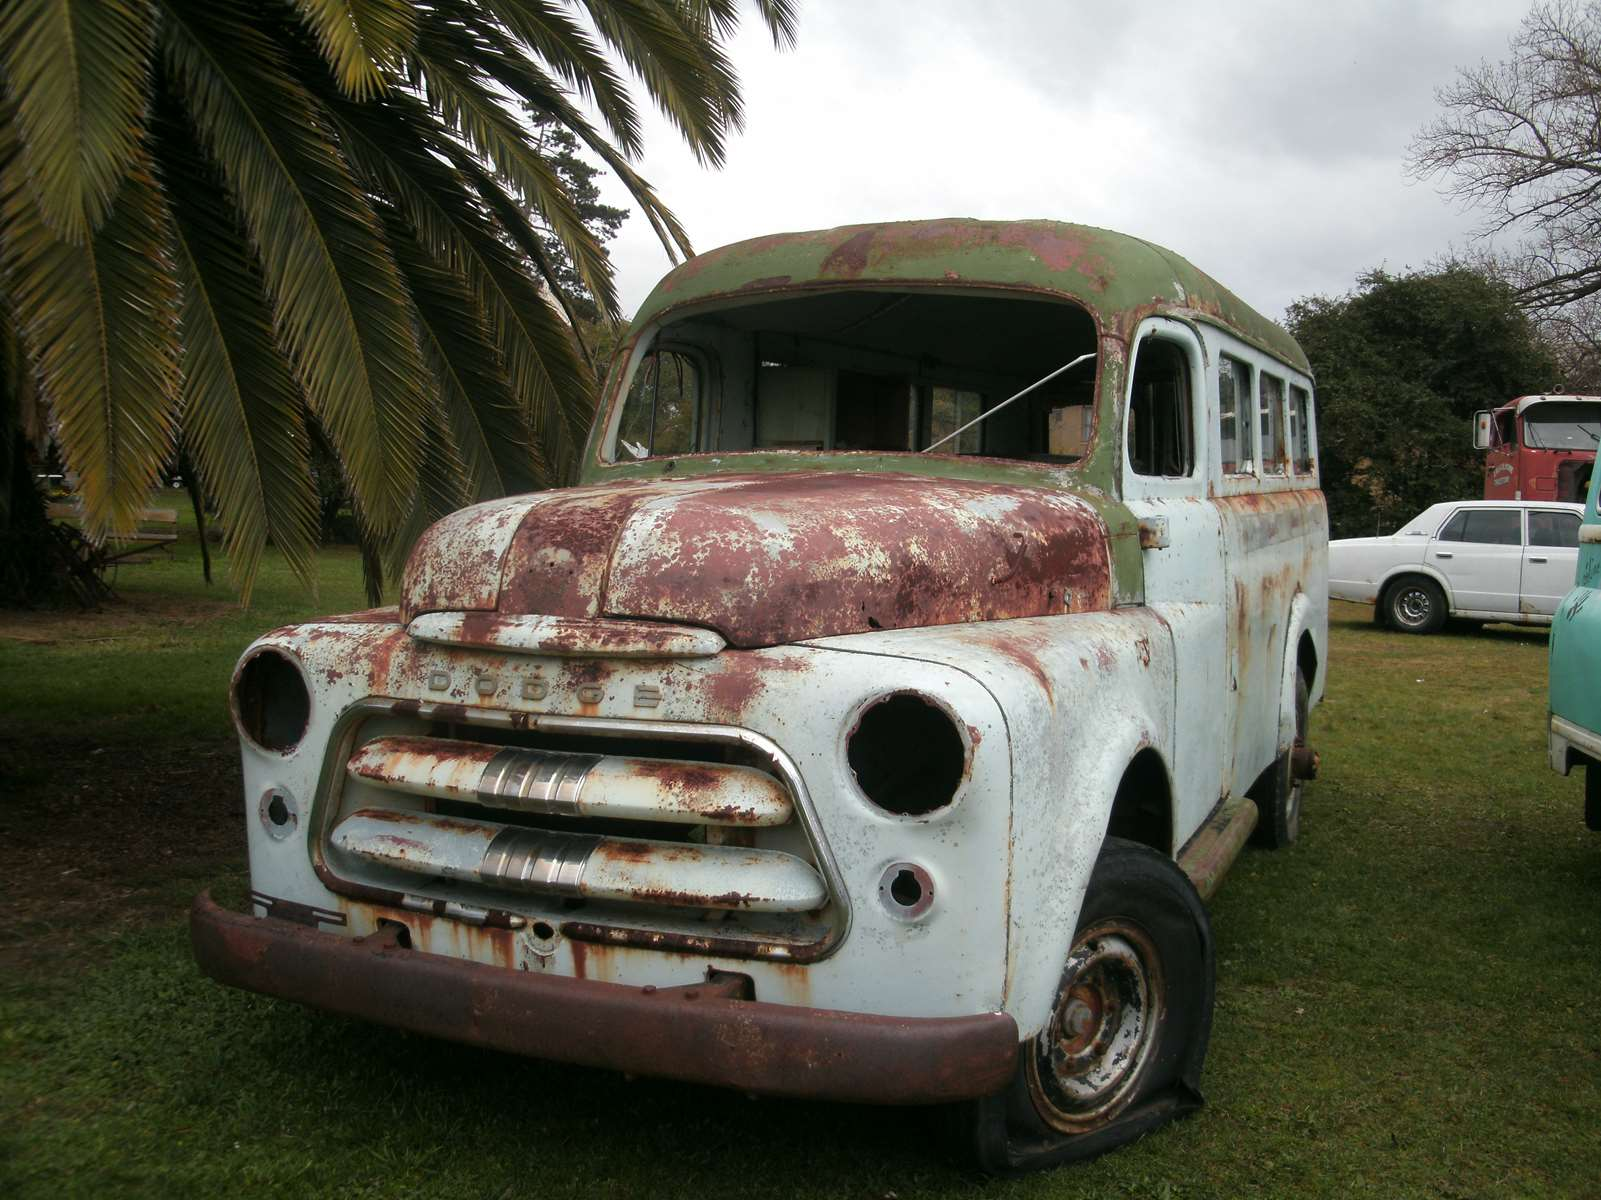 Wrecked Vintage Cars and Other Vehicles at Willow Court New Norfolk ...